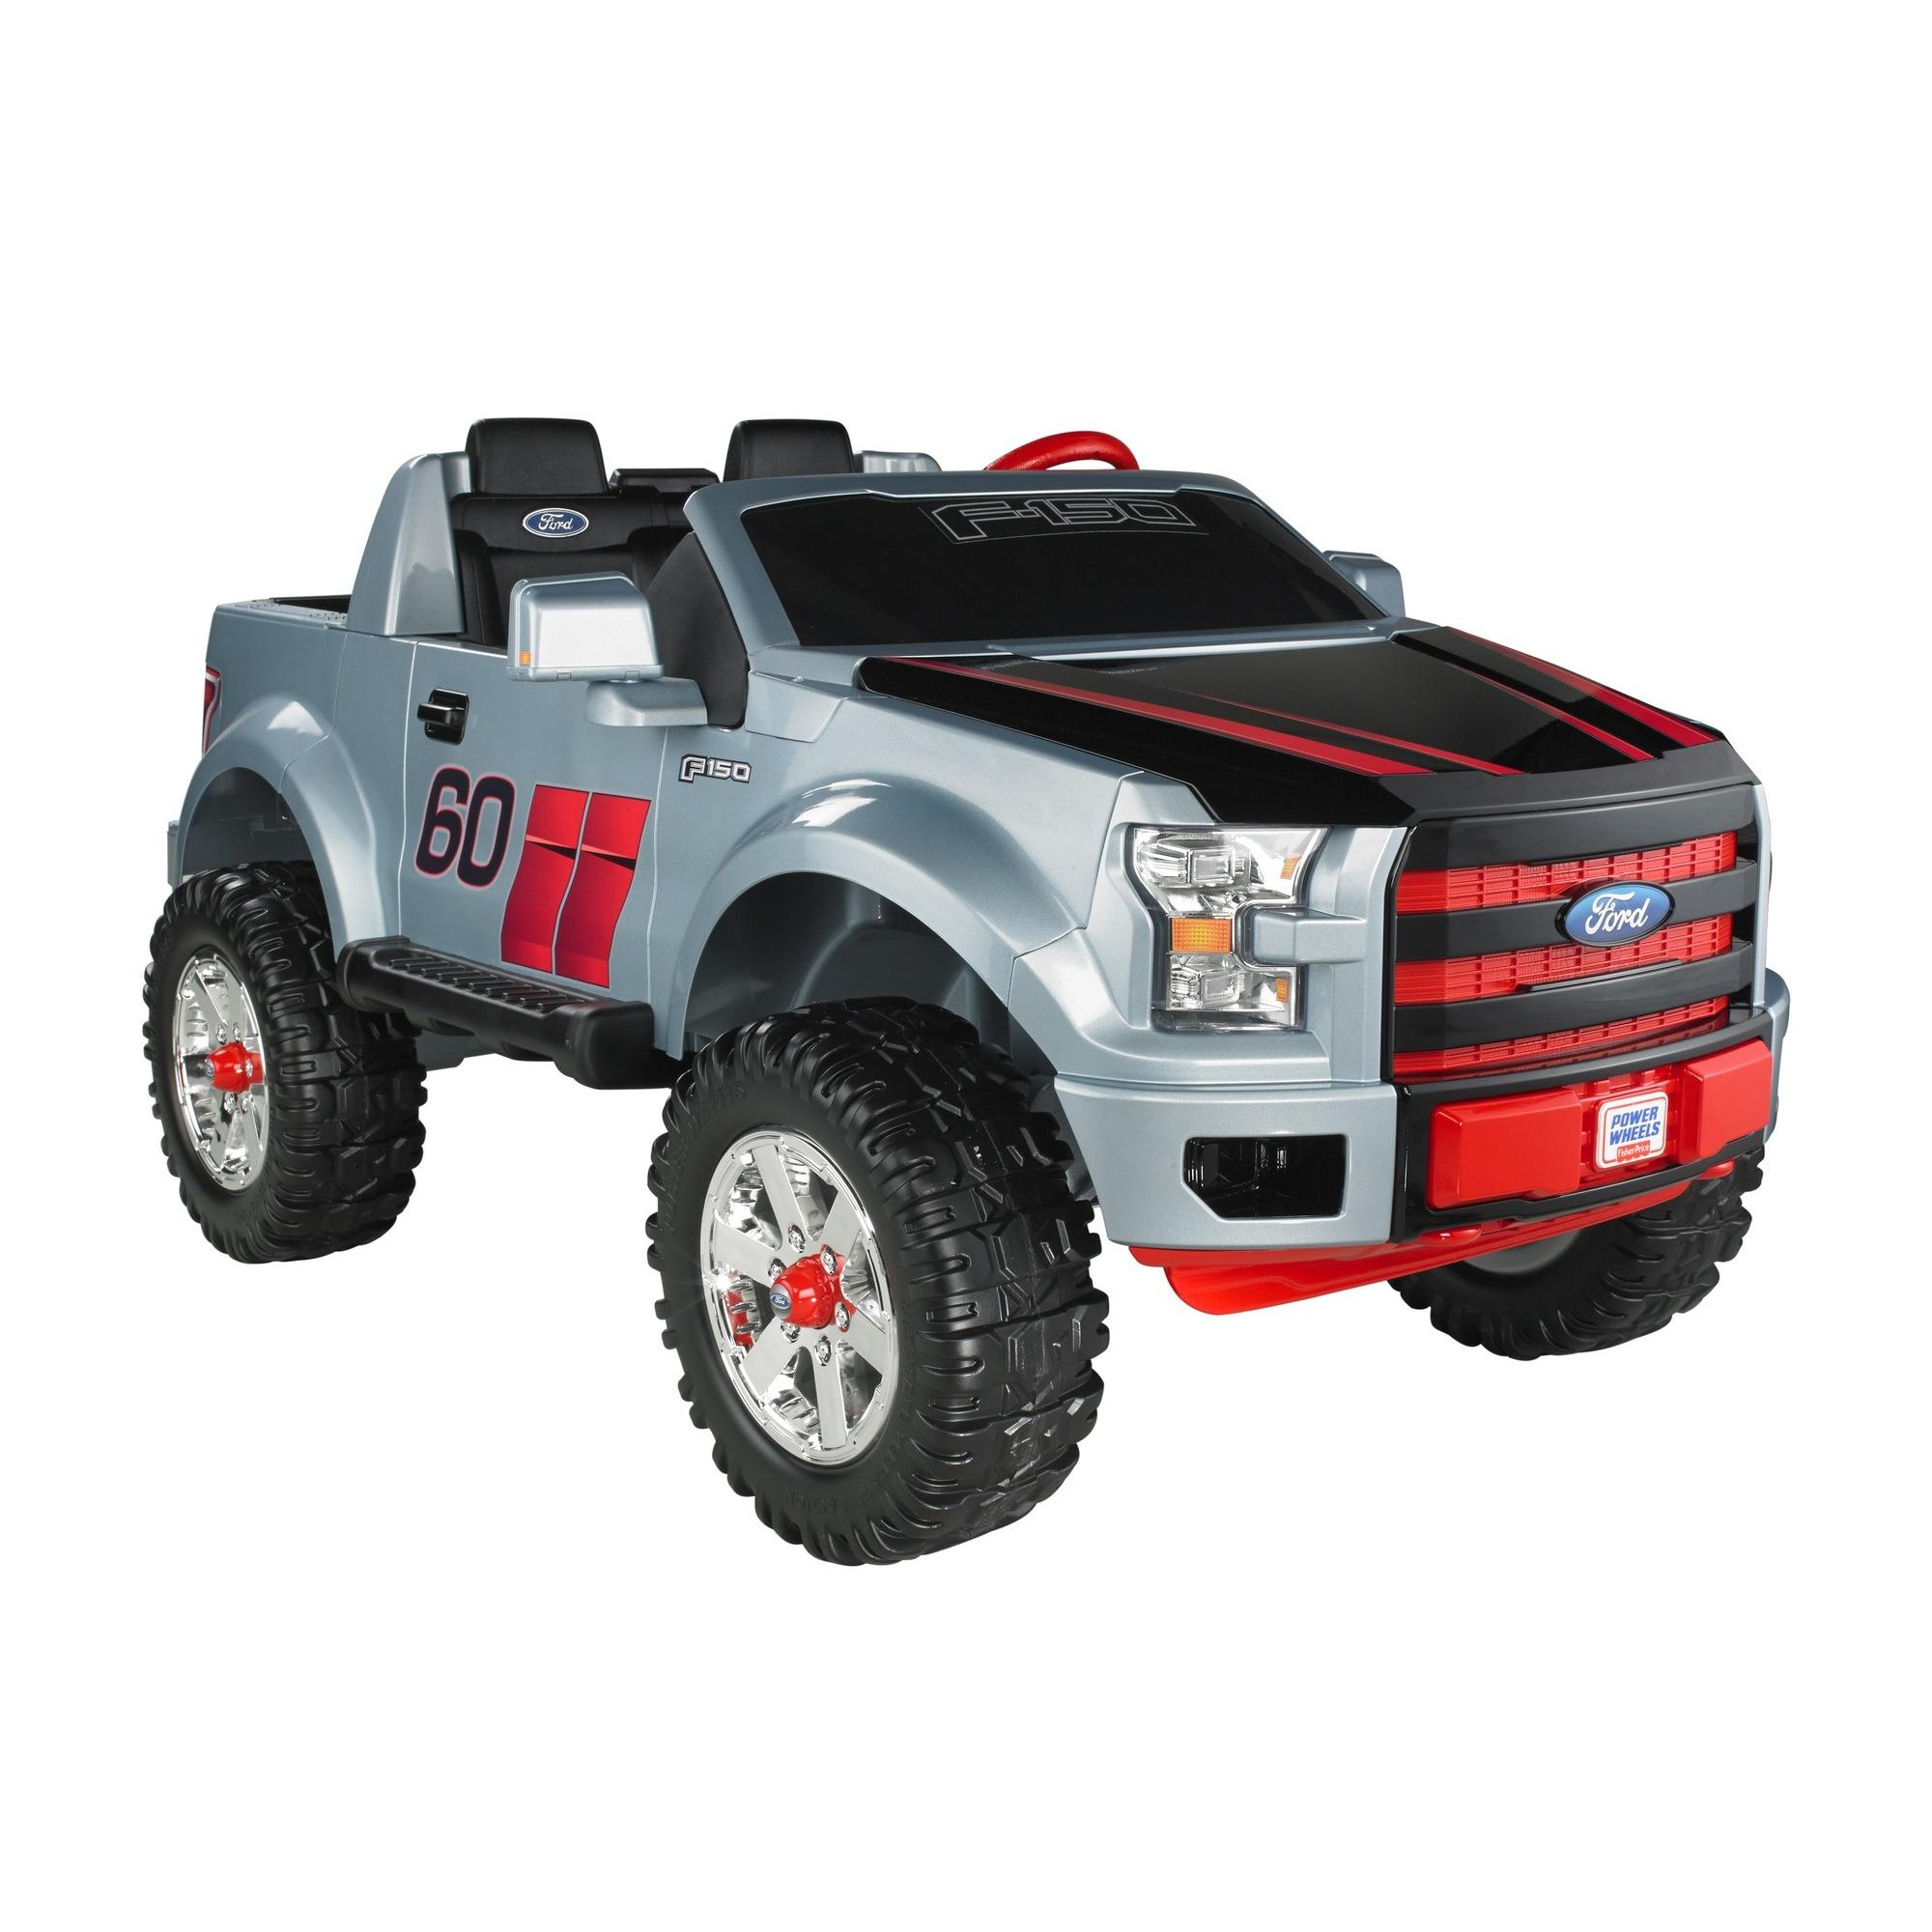 Power Wheels Ford F 150 Extreme Sport 12 Volt Battery Powered Ride 2 Speed Swamp Cooler Motor Wiring Diagram On